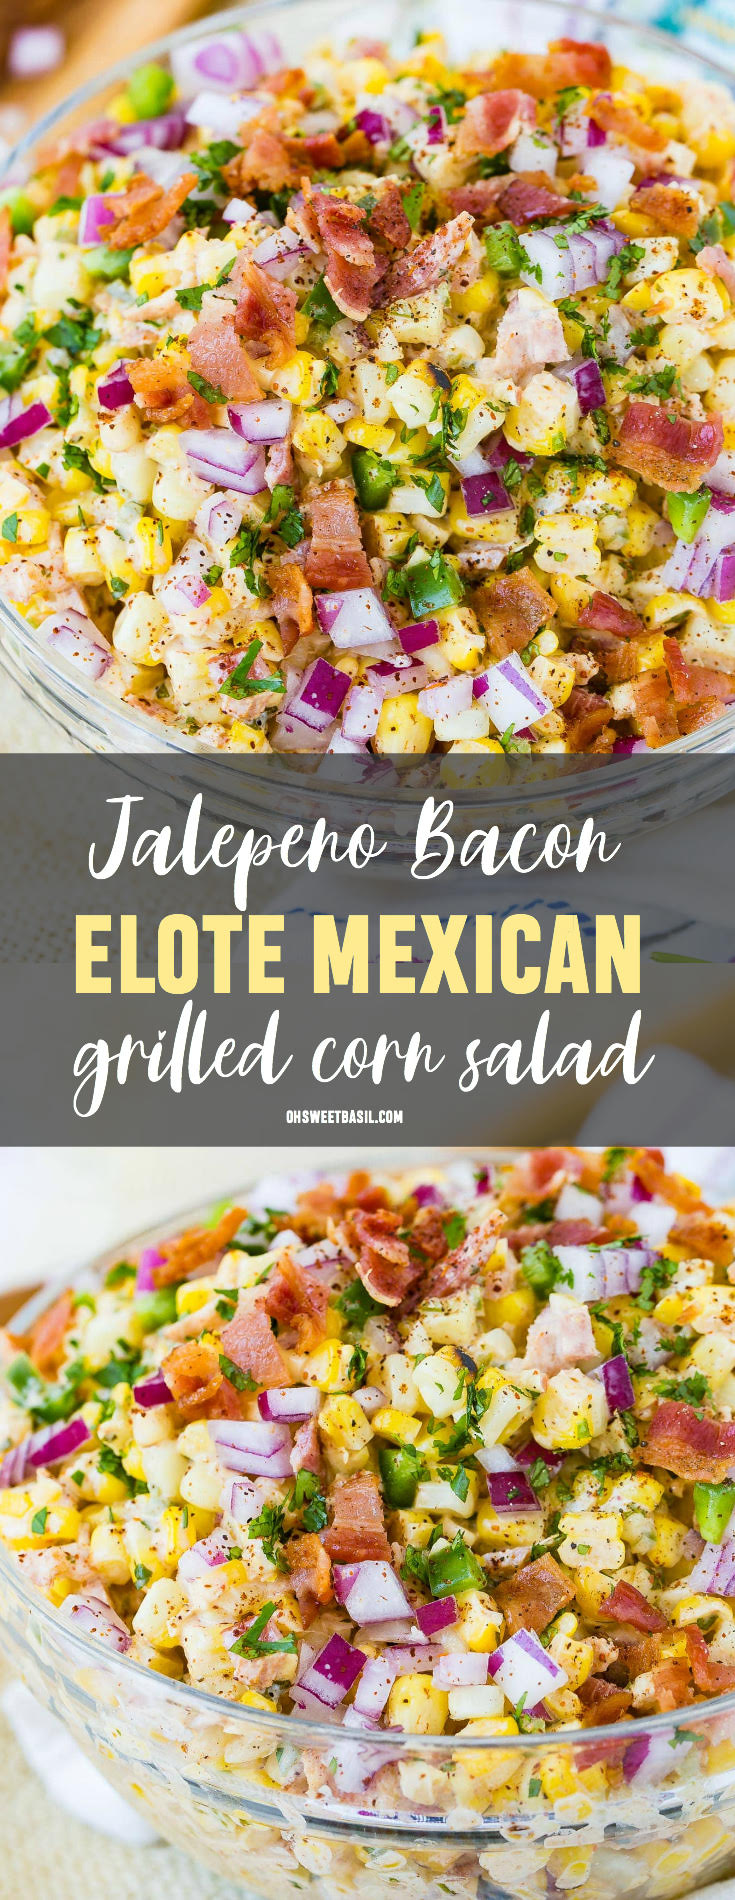 Jalapeno Bacon Elote Mexican Grilled Corn Salad - Oh Sweet Basil